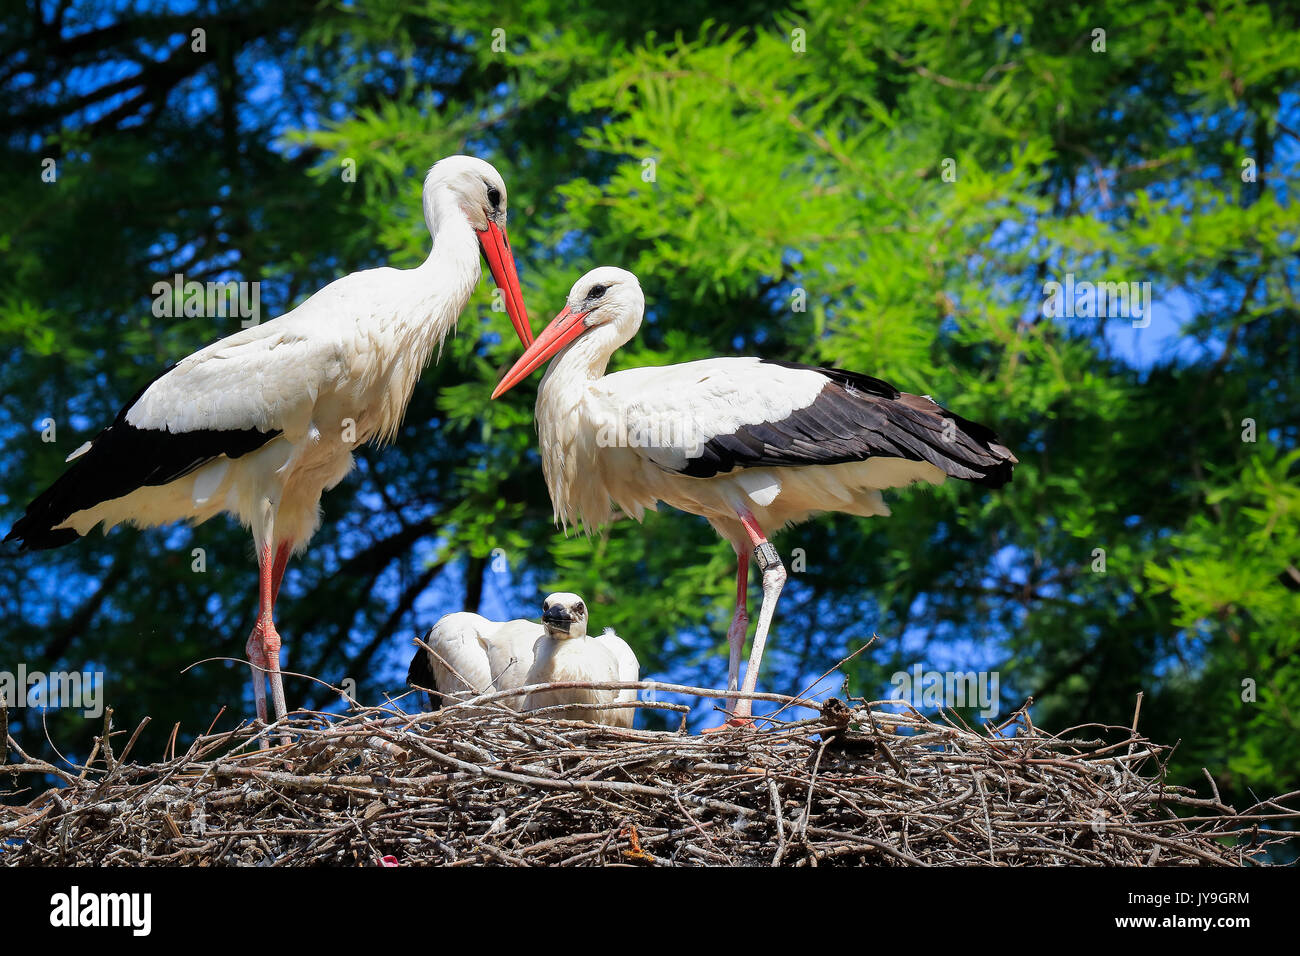 Adult  white storks (Ciconia ciconia) with chick on nest, Basel, Switzerland. - Stock Image